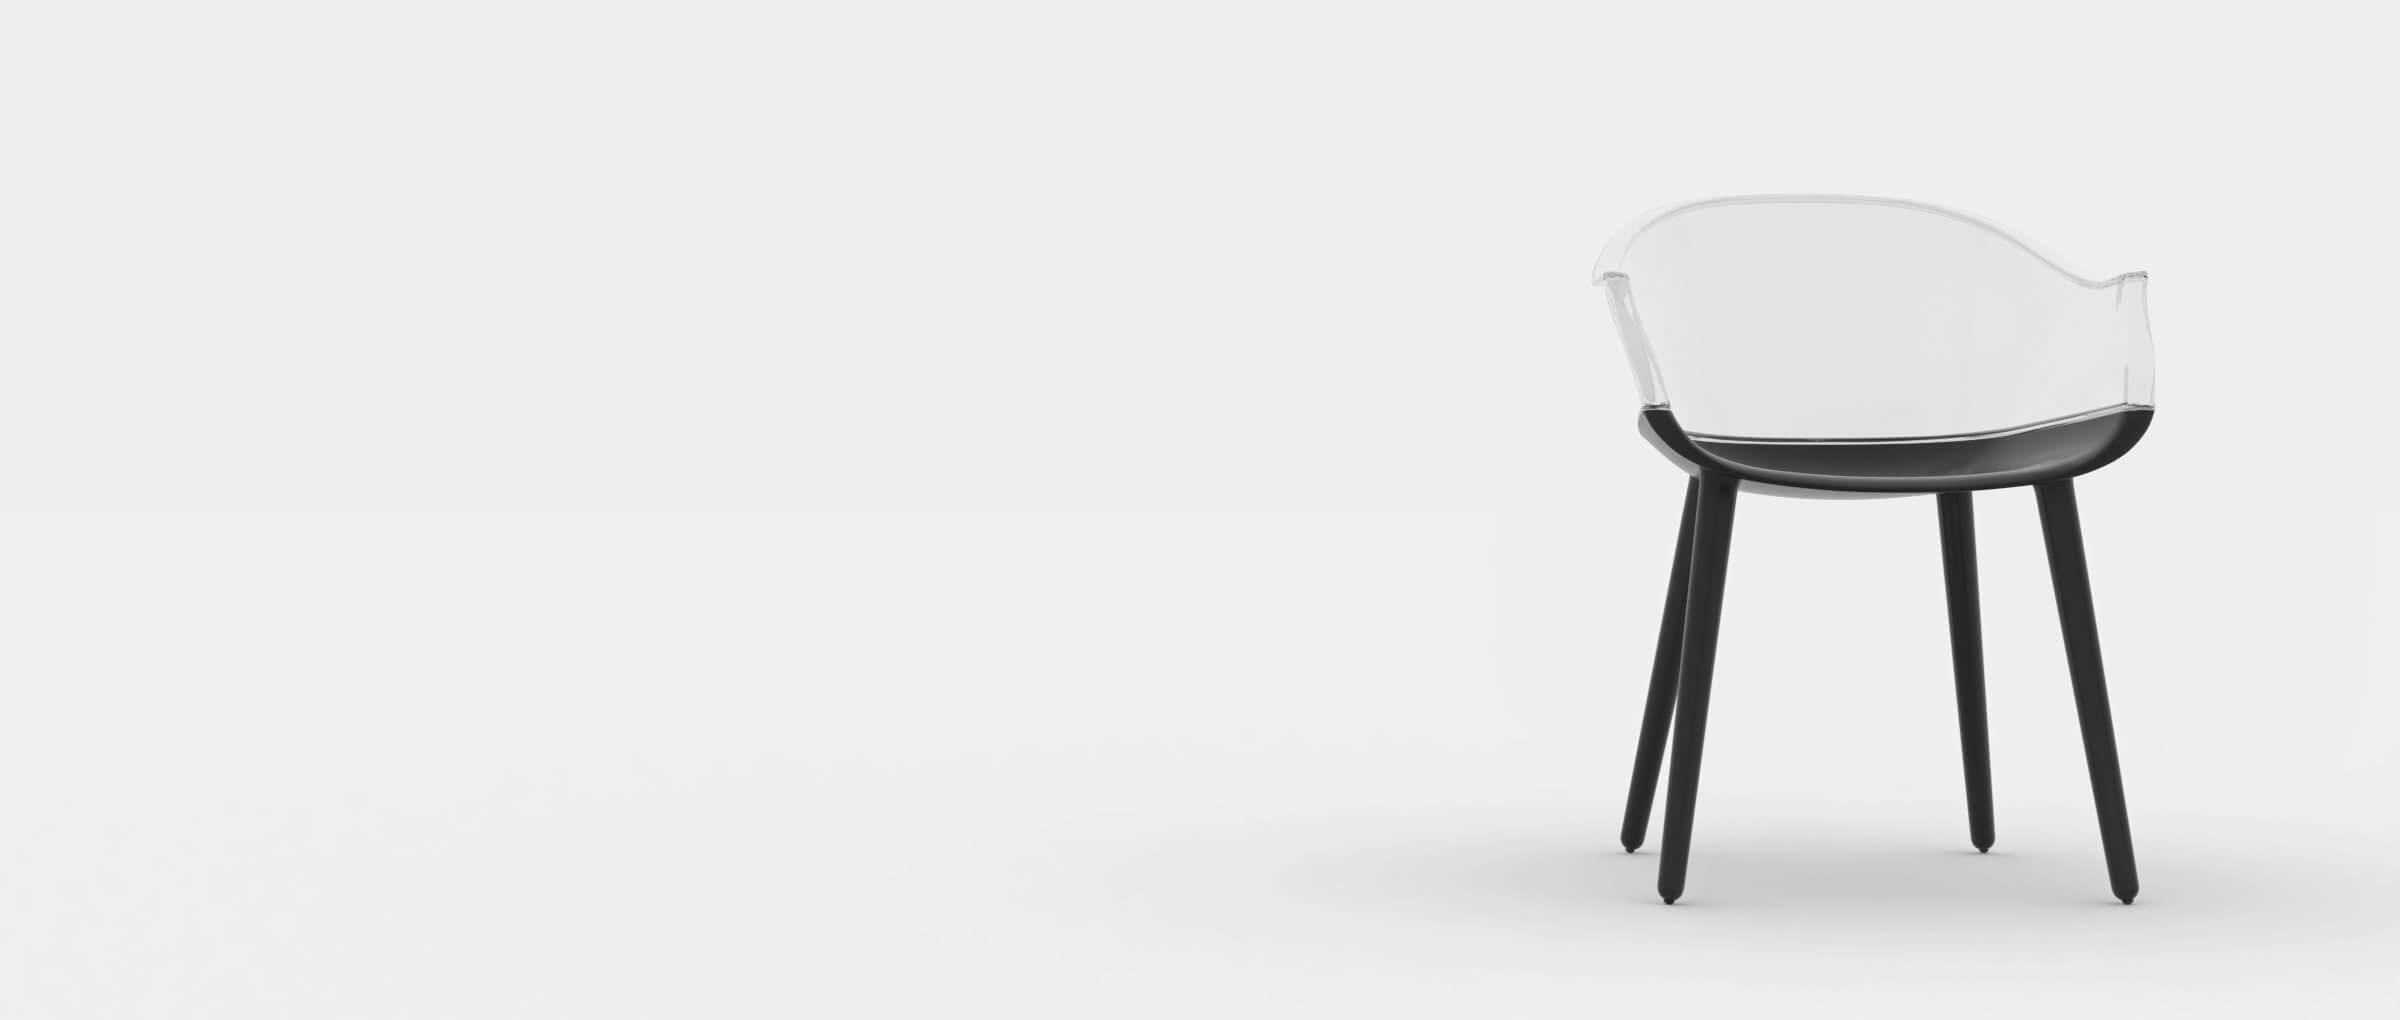 Round armchair & dining chair 3